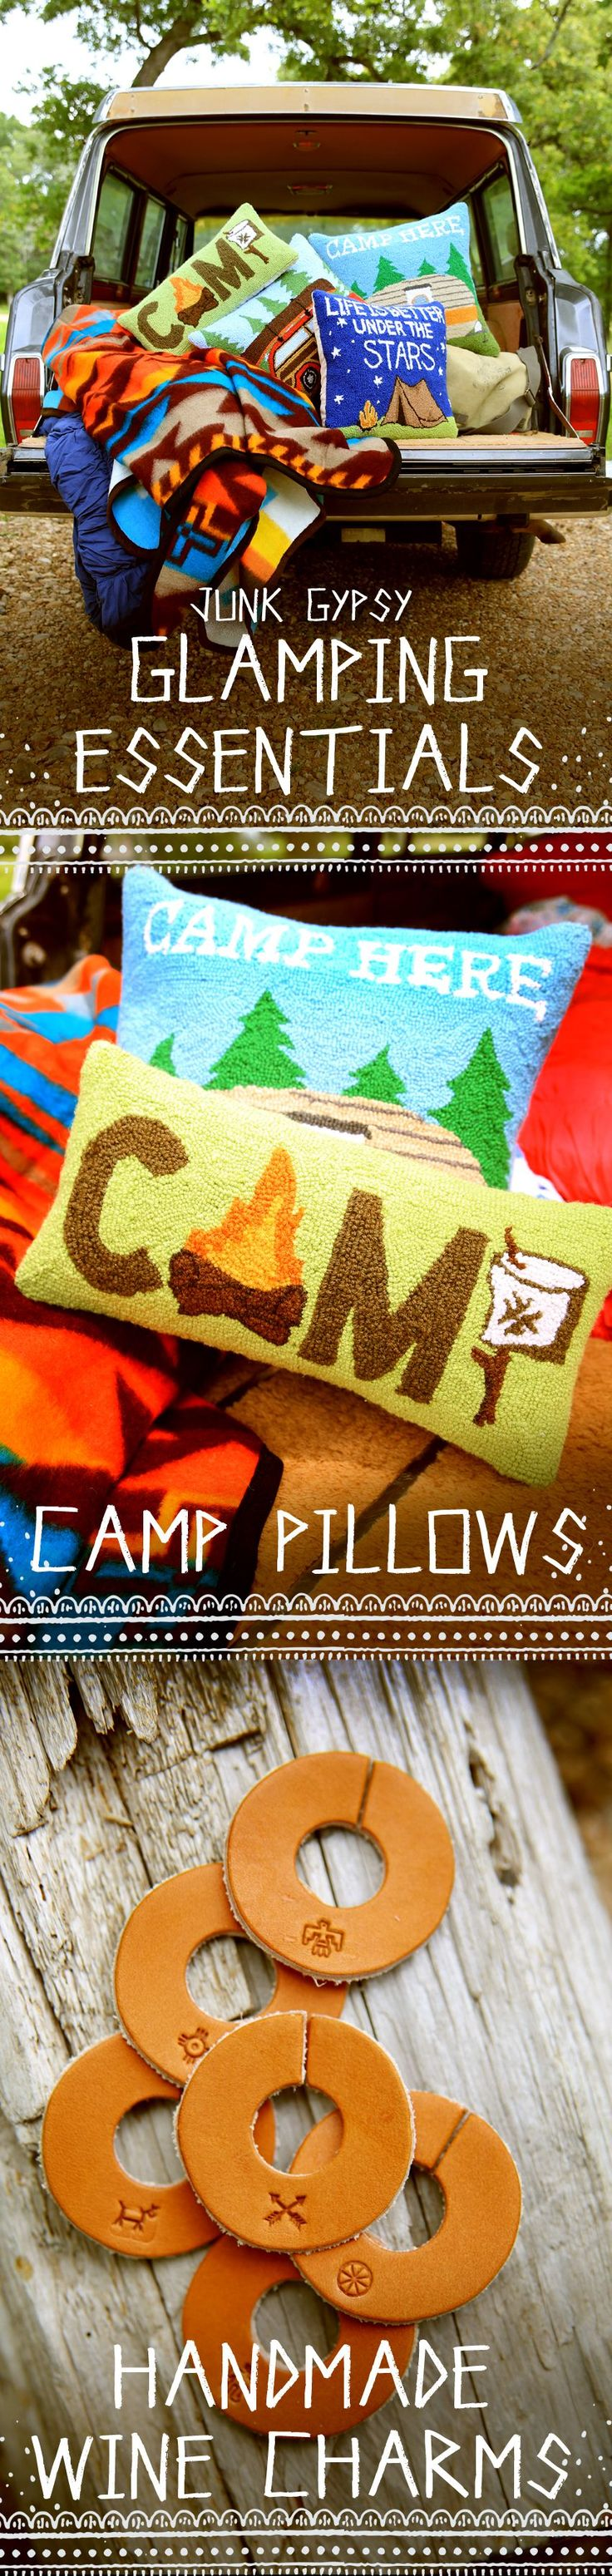 1888 best Camping Pillow images on Pinterest | Campsite, Adventure Pillow Ideas For Camping on ground cloth for camping, luggage for camping, 6 man tents for camping, high chairs for camping, 5 person tents for camping, diy projects for camping, handbags for camping, cool box for camping, decorations for camping, bibs for camping, boxes for camping, storage bins for camping, trash can for camping, dresses for camping, comforters for camping, personalized signs for camping, mason jars for camping, puzzles for camping, tablecloths for camping, food for camping,